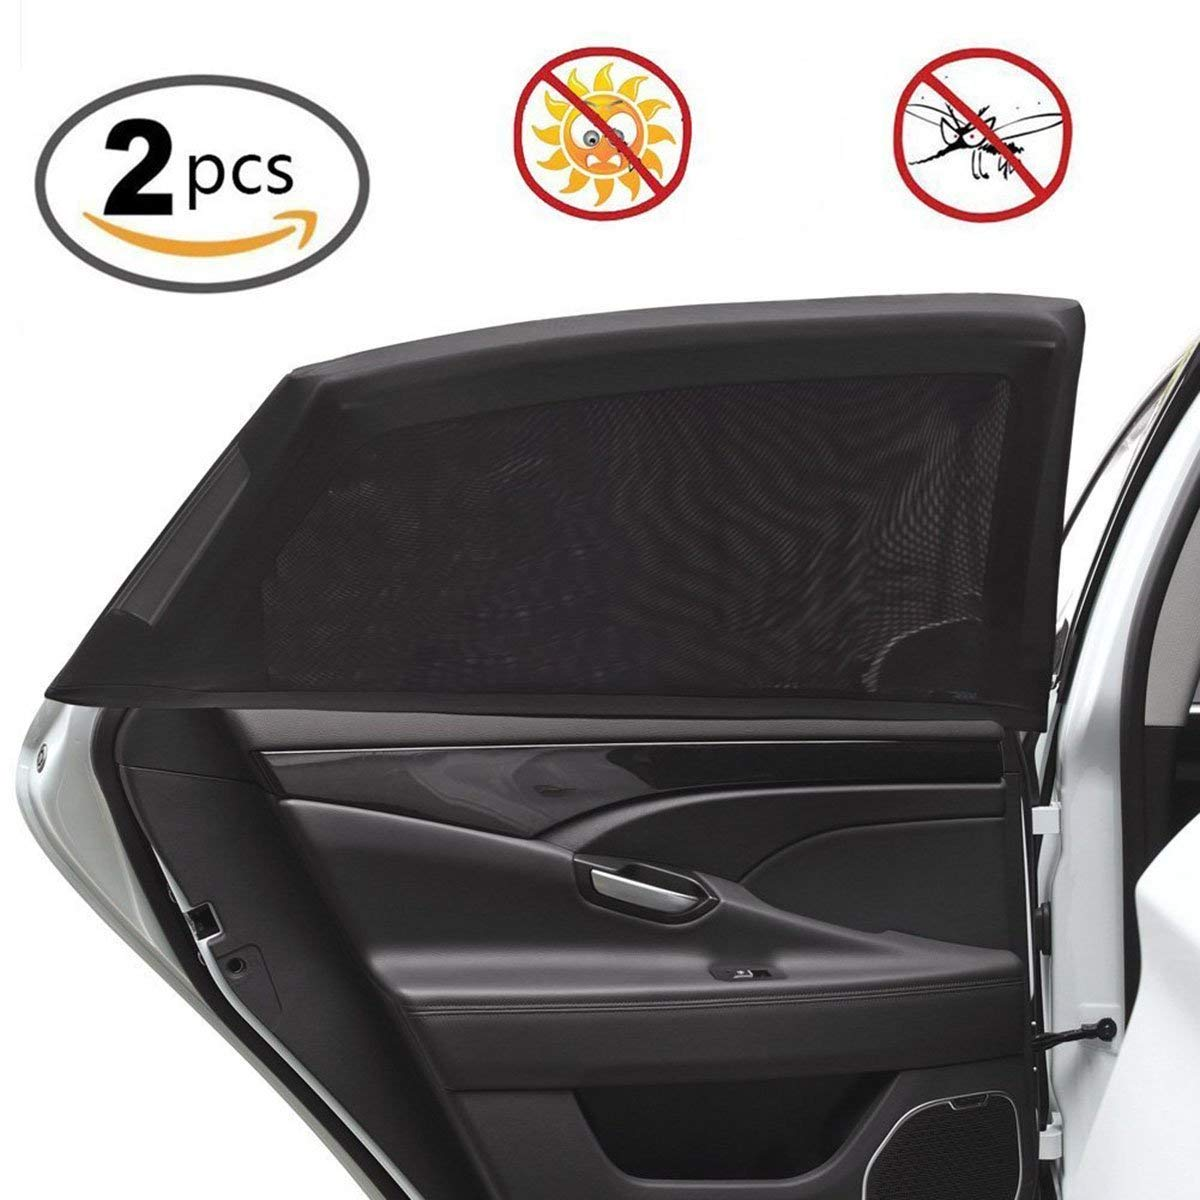 Nvetls 2 Packs Car Window Shades for Baby Children and Pet Car Sunshades Universal Block Sunlight and UV Ray by Nvetls